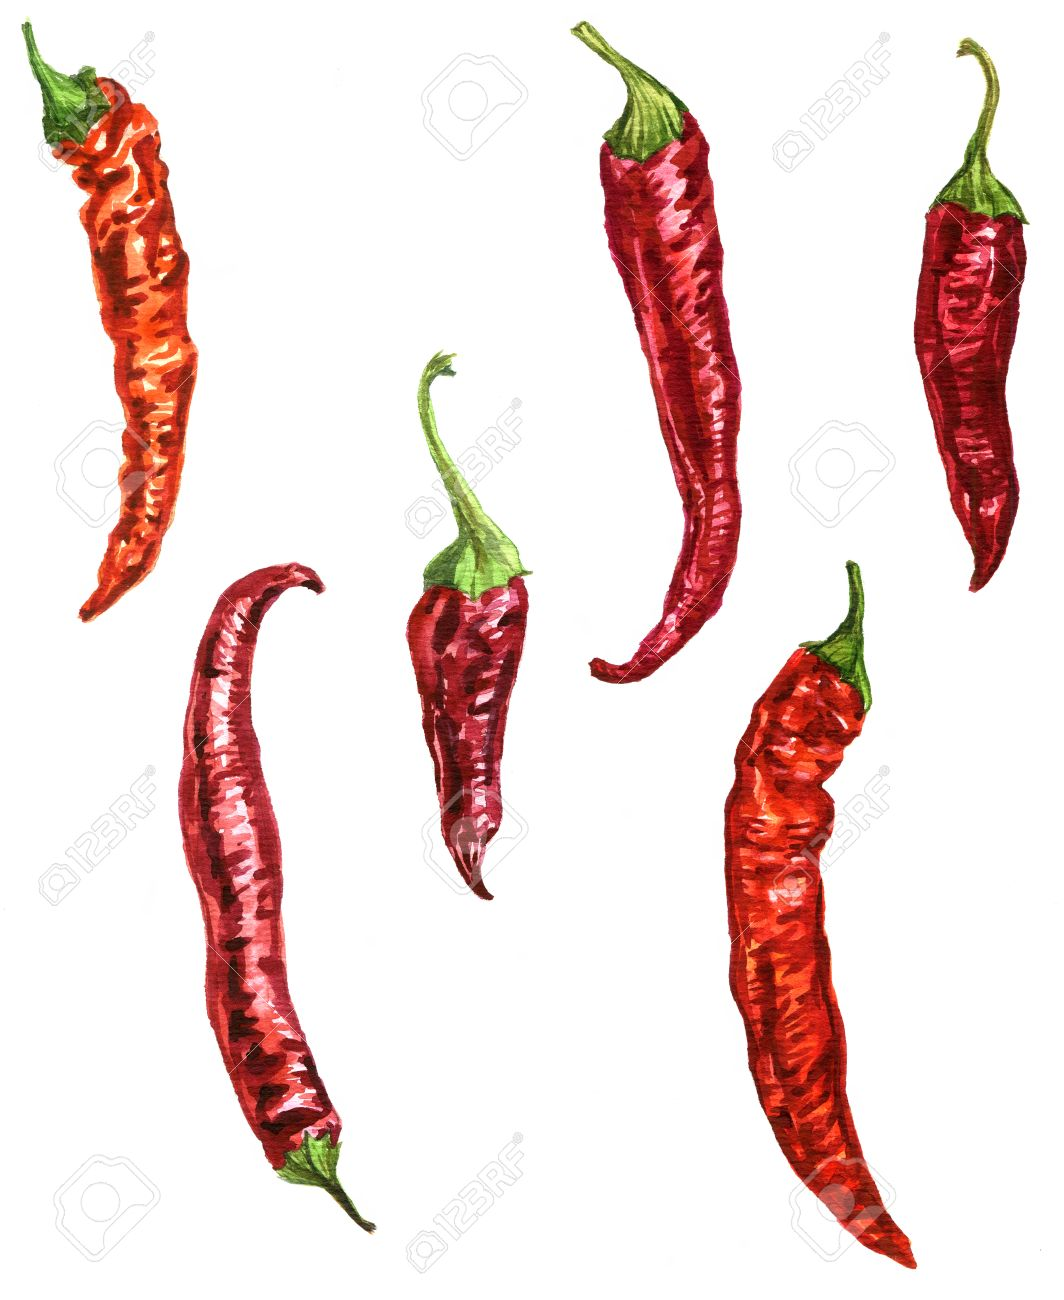 1064x1300 Red Chili Pepper Drawing By Watercolor At White Background